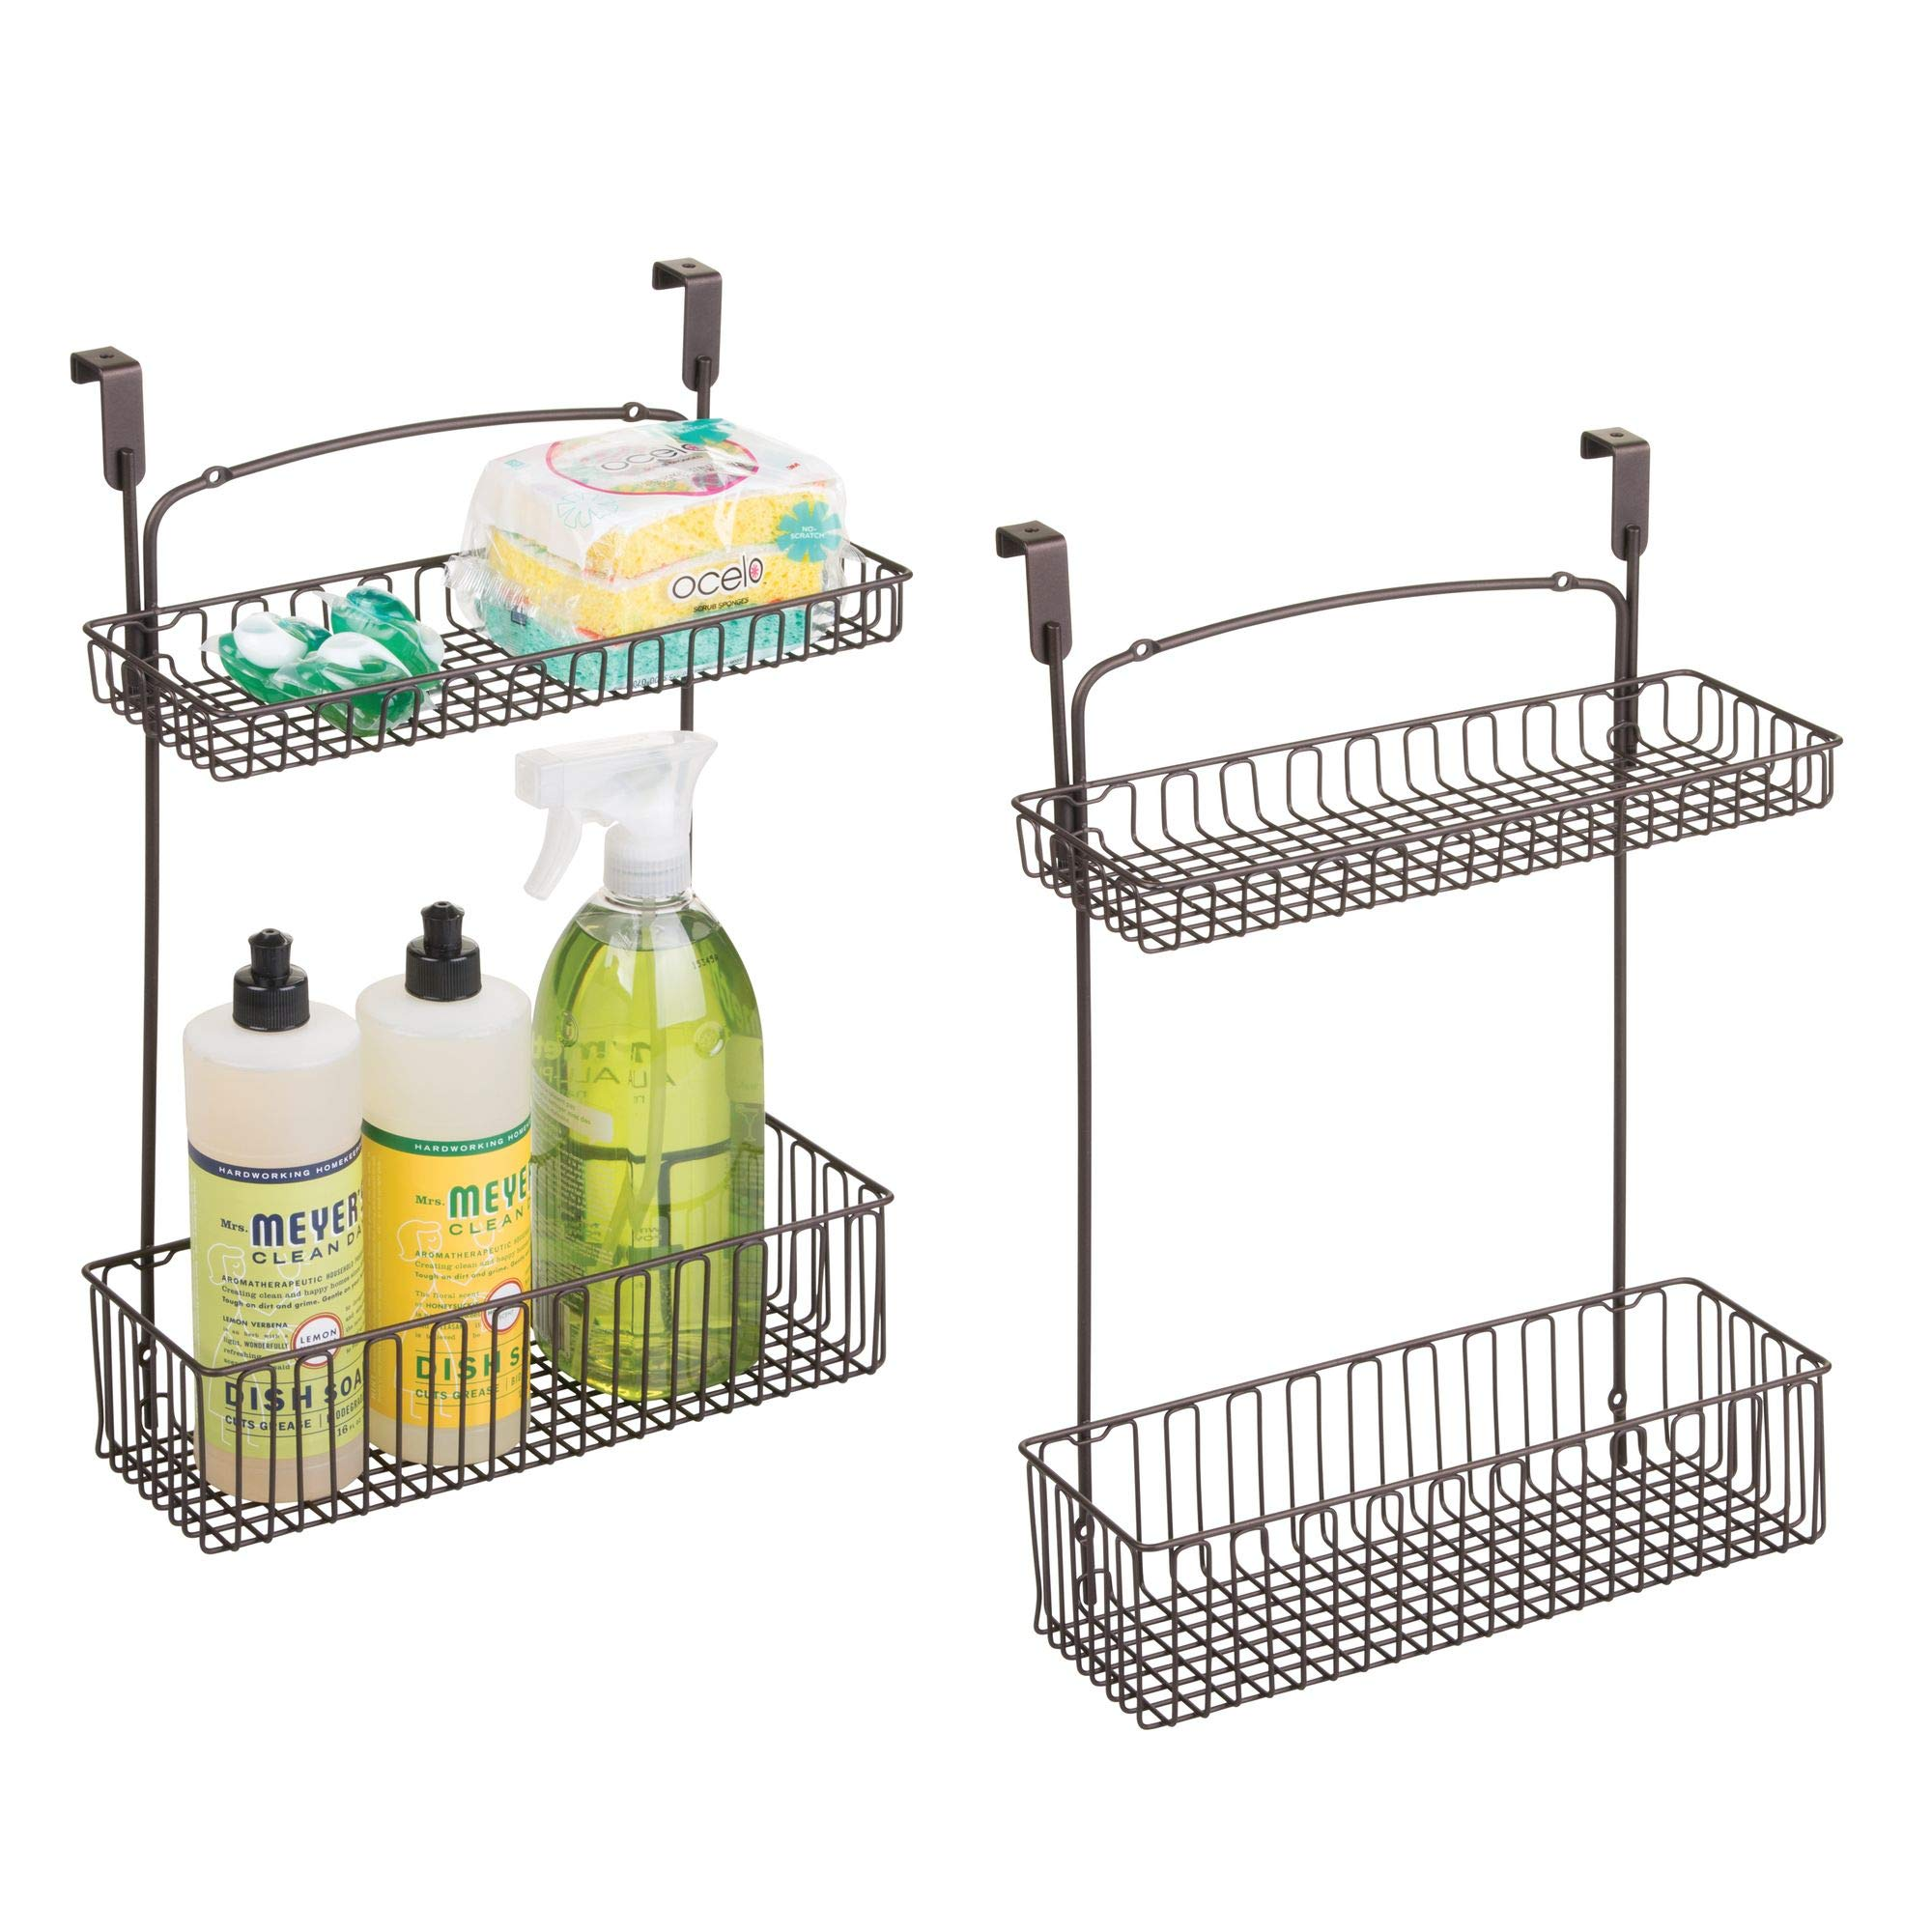 mDesign Over Cabinet Kitchen Storage Organizer Holder or Basket - Hang Over Cabinet Doors in Kitchen/Pantry - Holds Dish Soap, Window Cleaner, Sponges - Pack of 2, Steel Wire in Bronze Finish